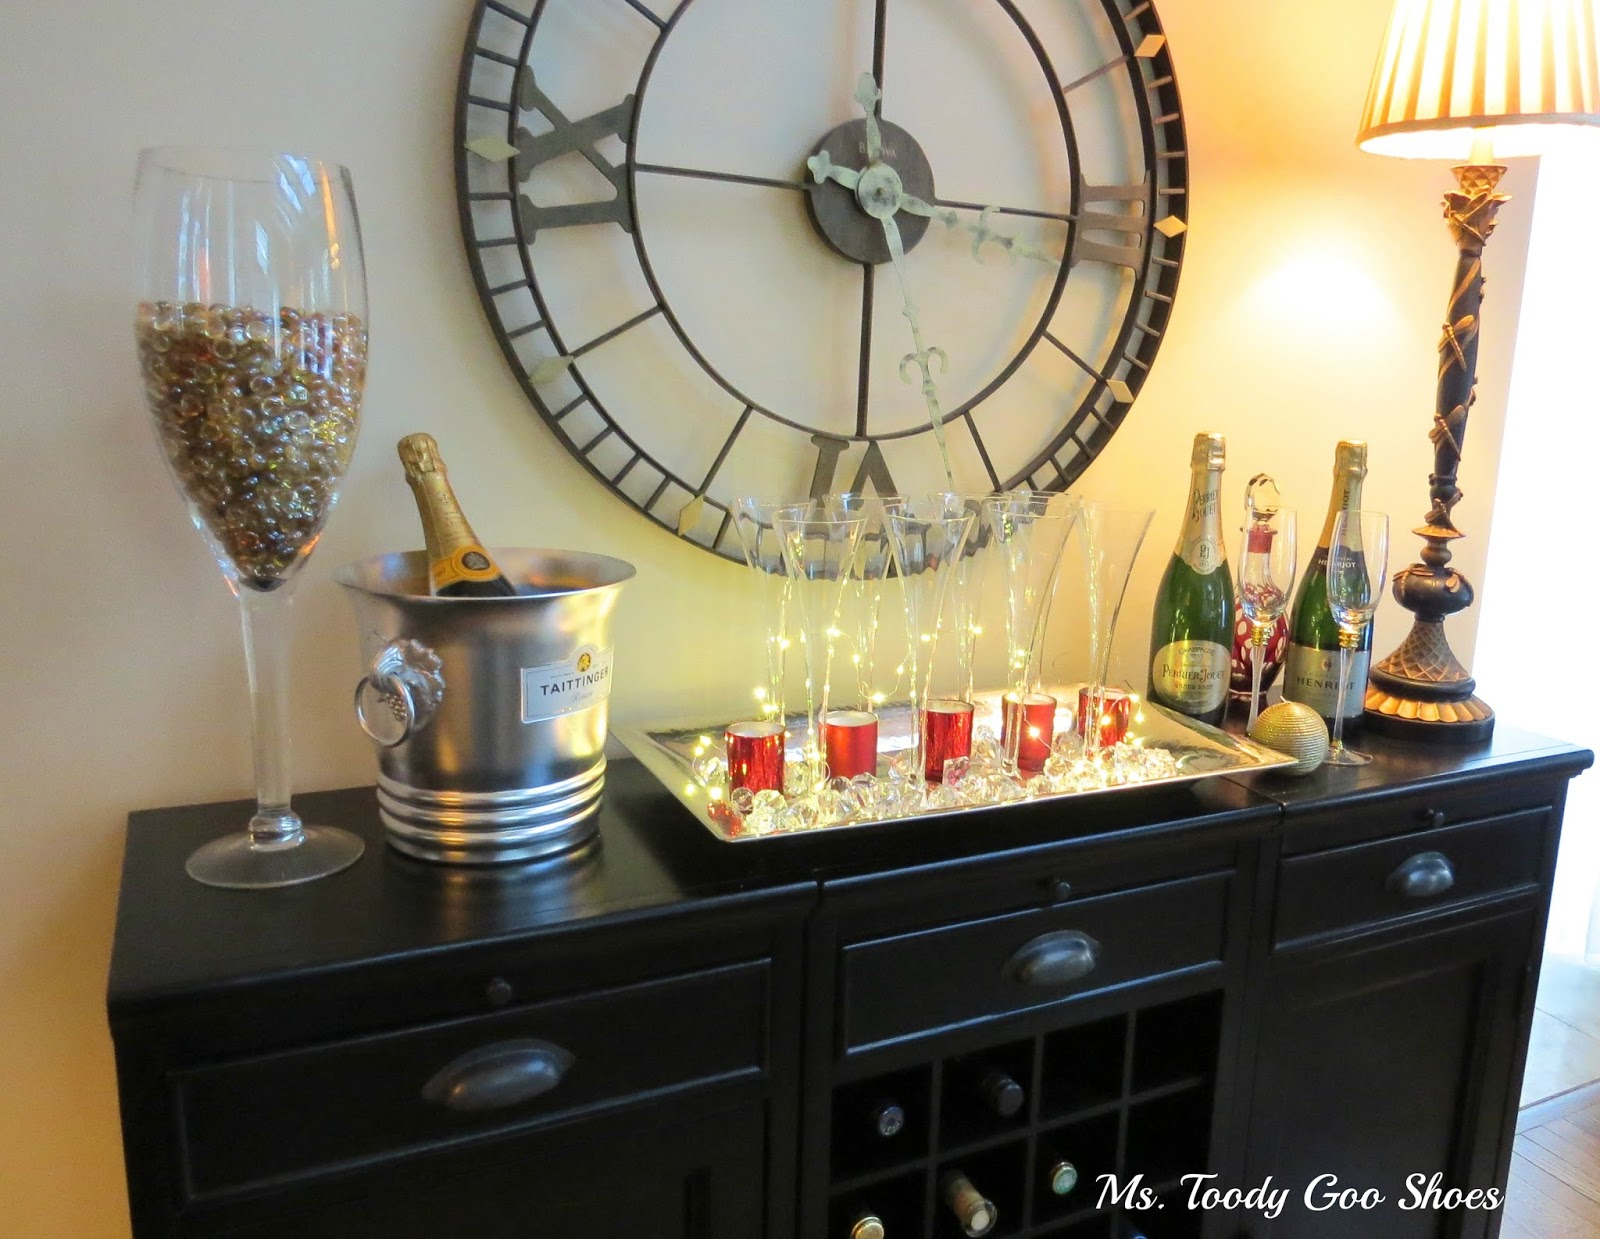 A Bubbly New Year's Eve Centerpiece that takes only 30 seconds to make!  --- by Ms. Toody Goo Shoes